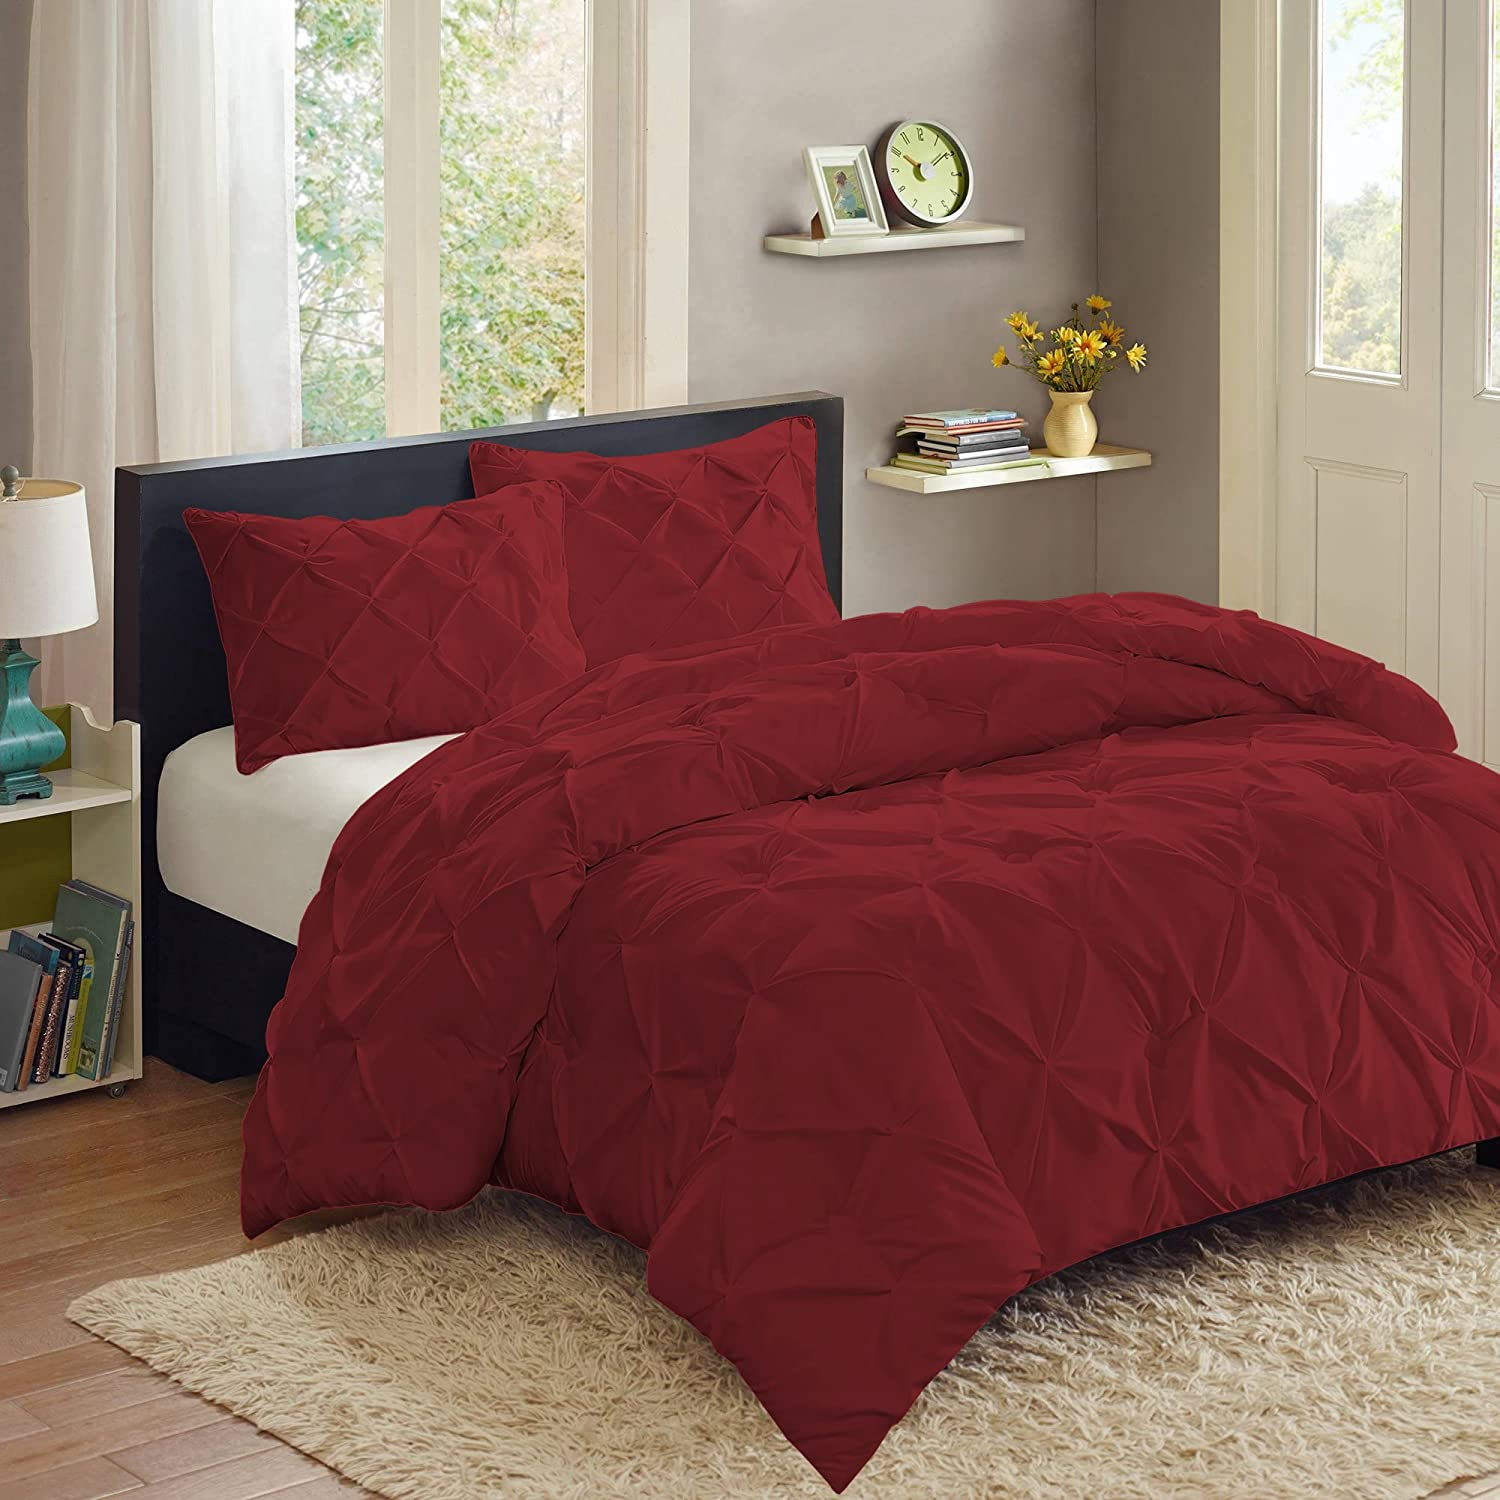 3 Piece PP Luxury Pinch Pleat Pintuck Fashion Duvet Set, King, Burgundy